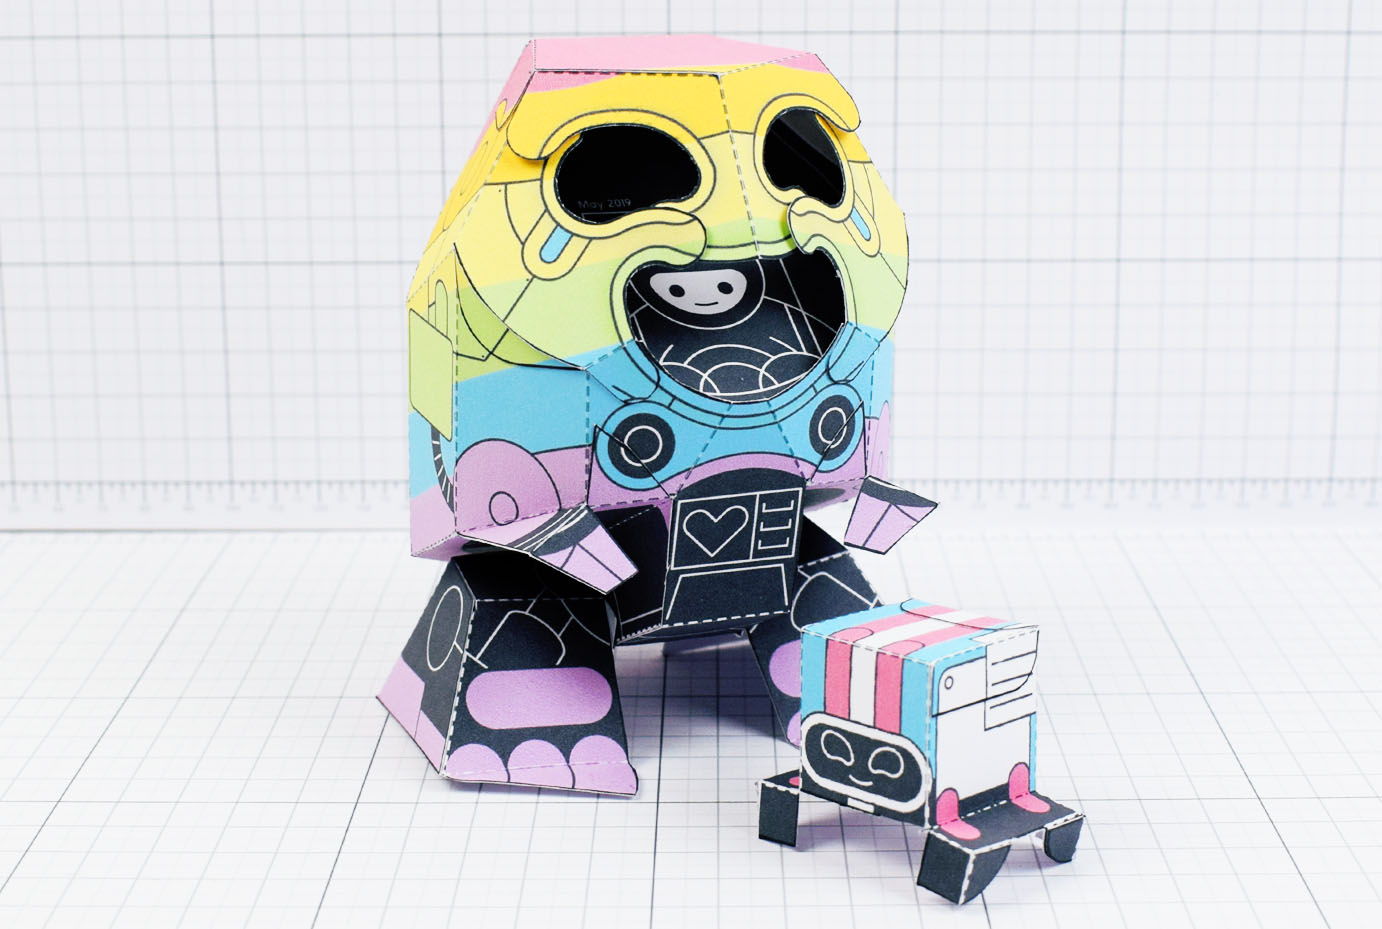 PTI-Gaysper Pride paper toy rainbow ghost robot photo image - Main 1